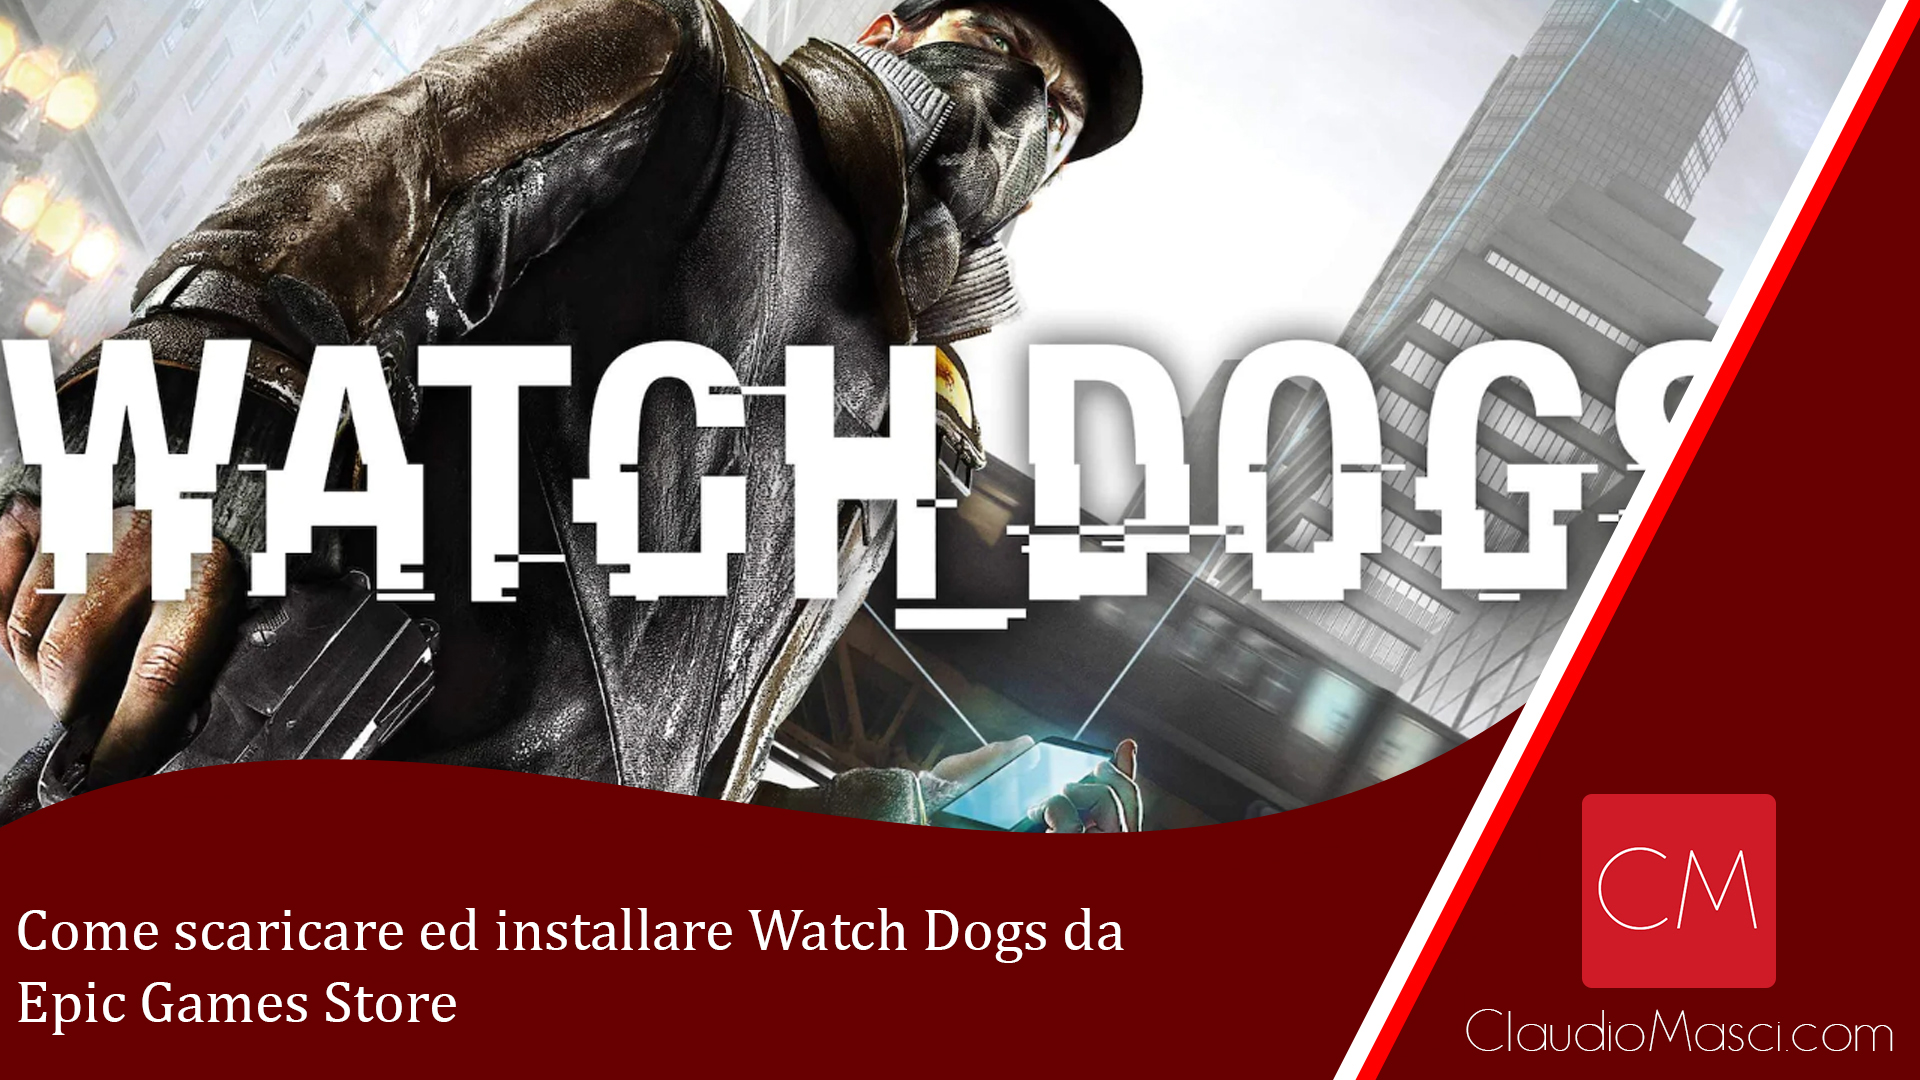 Come scaricare ed installare Watch Dogs da Epic Games Store